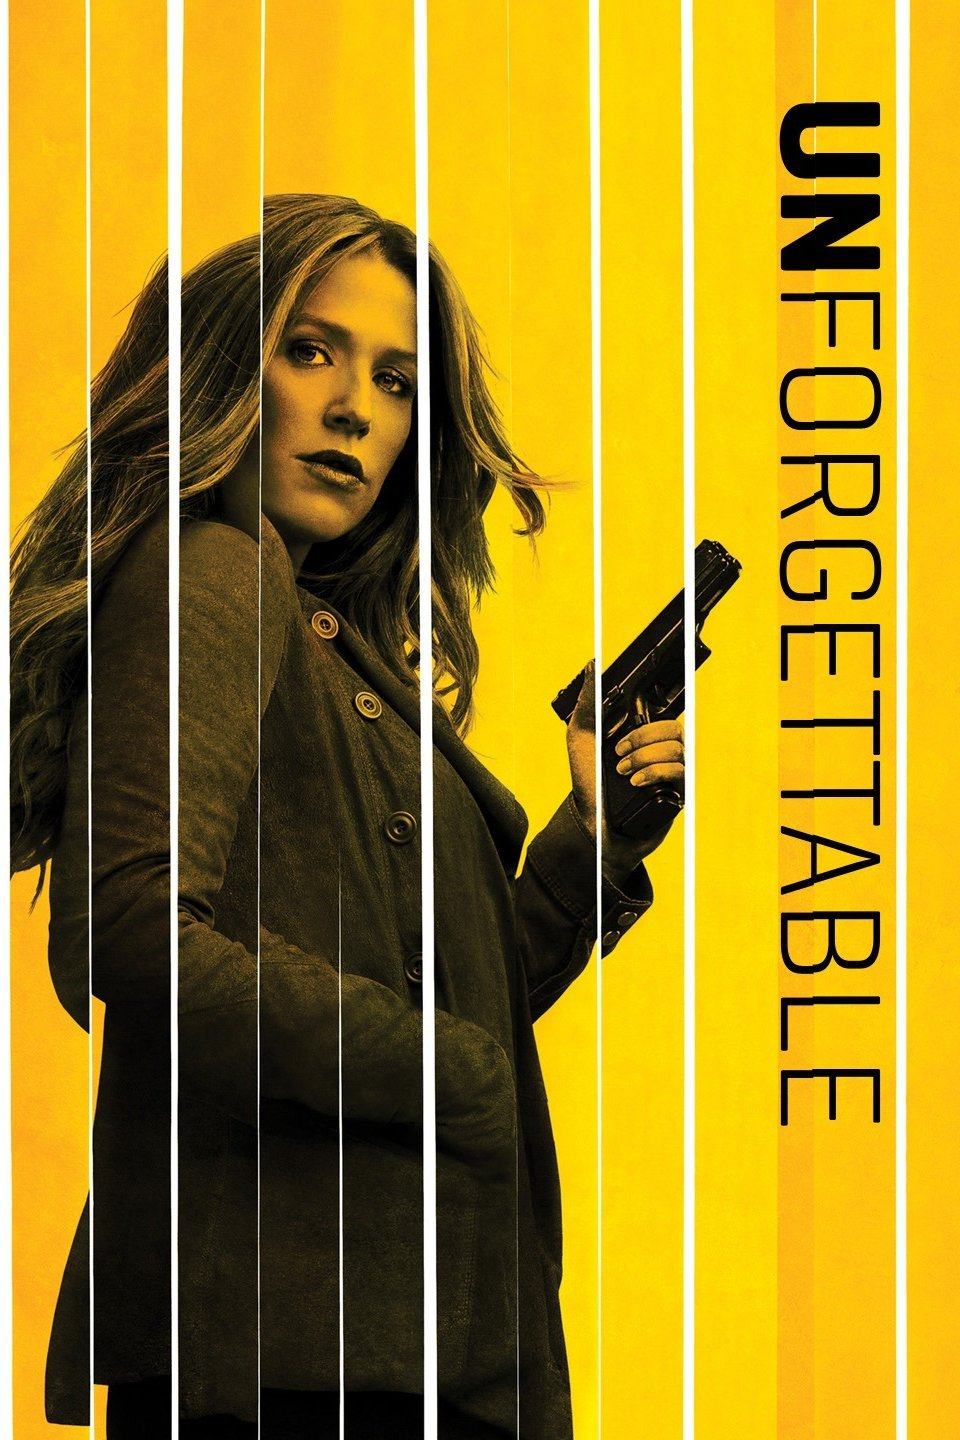 Unforgettable Tv Series Download Season 2 Complete 480p WEB-DL